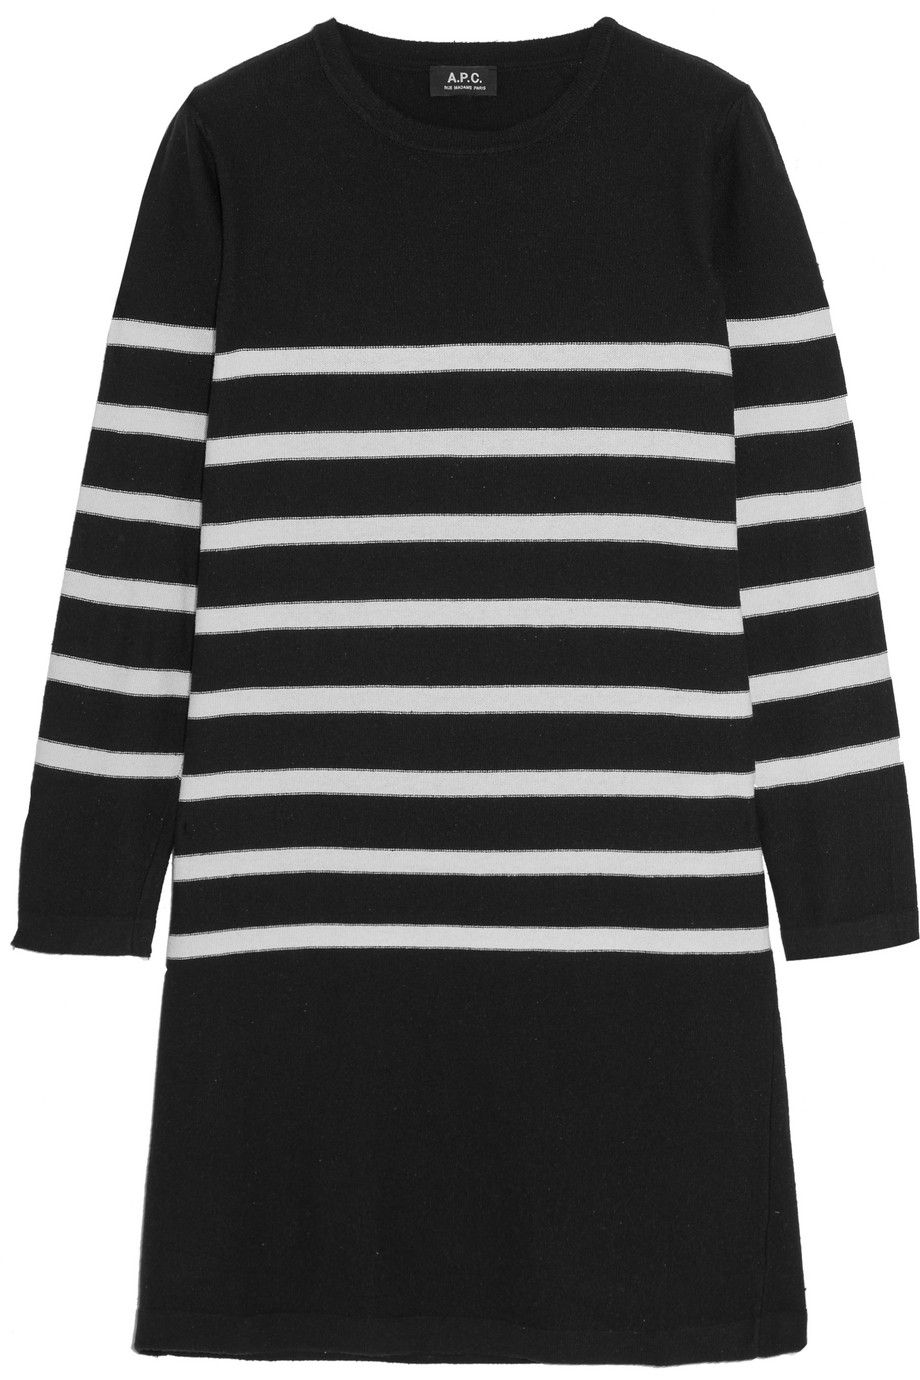 Striped Silk Sweater Dress, A.P.C. Atelier De Production Et De Création